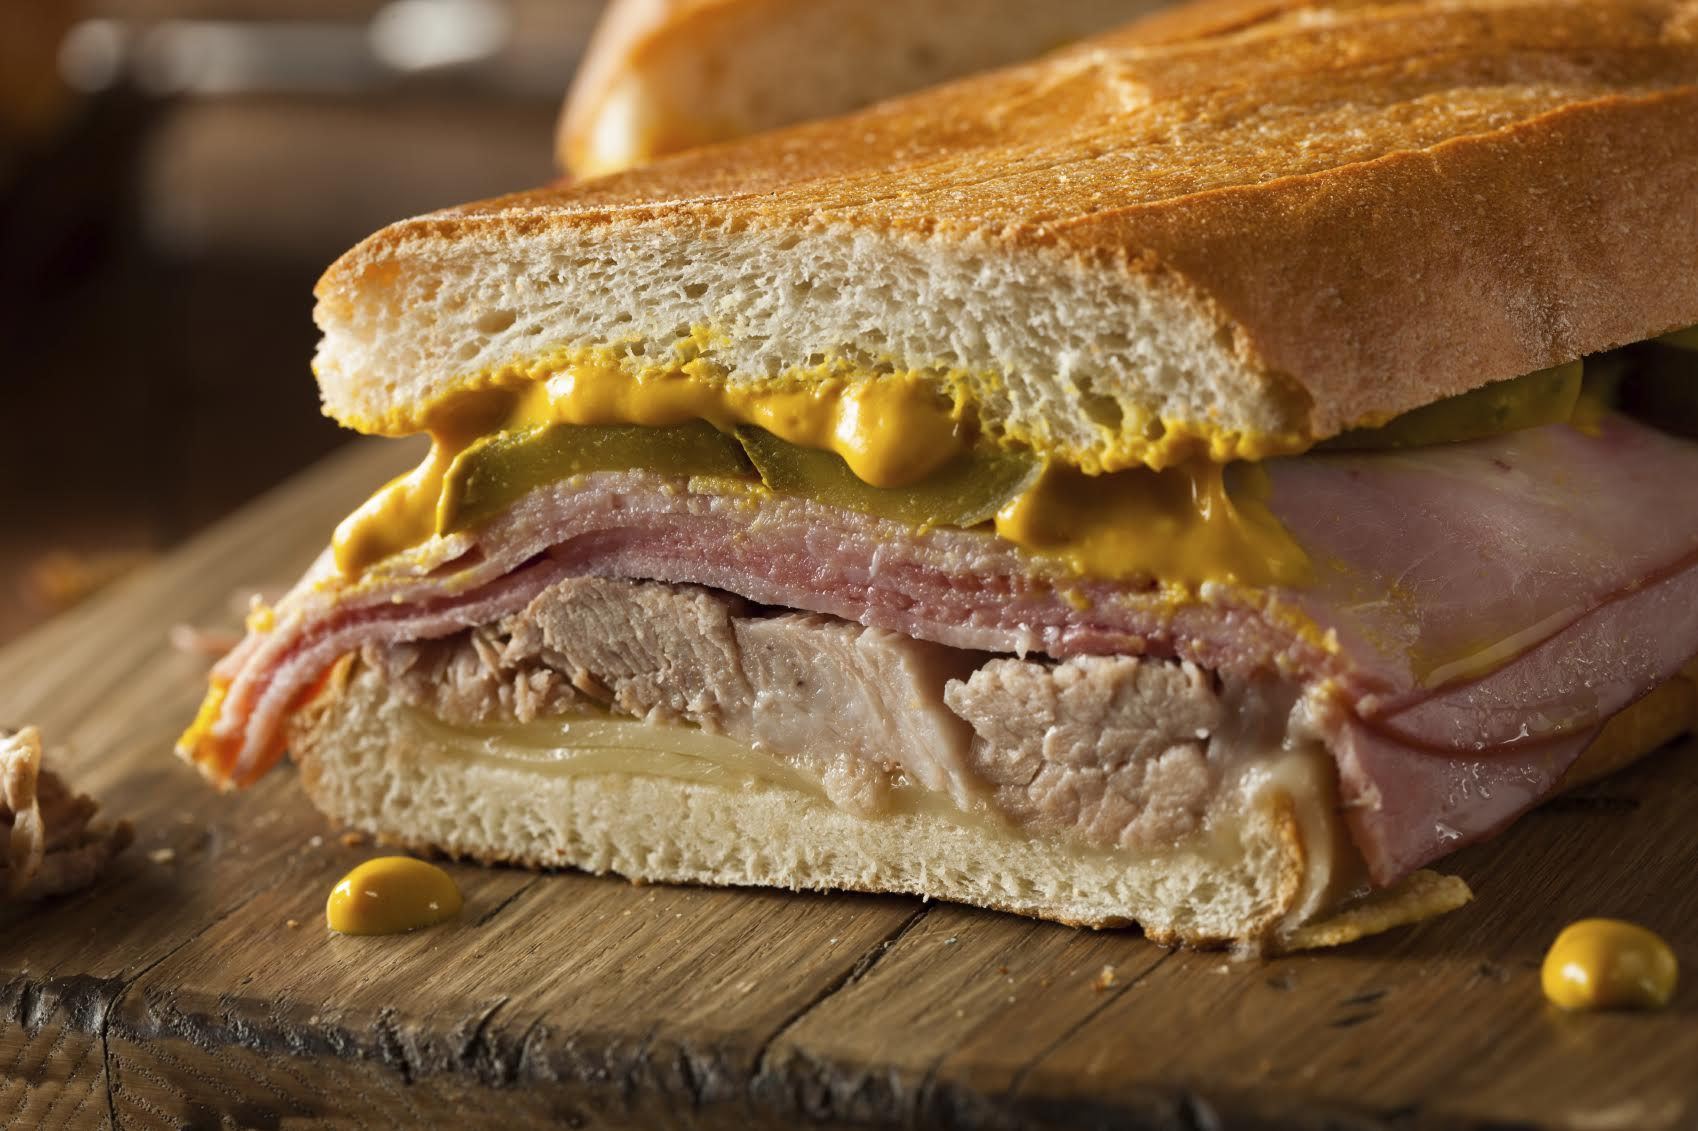 Homemade traditional cuban sandwiches with ham, pork and cheese